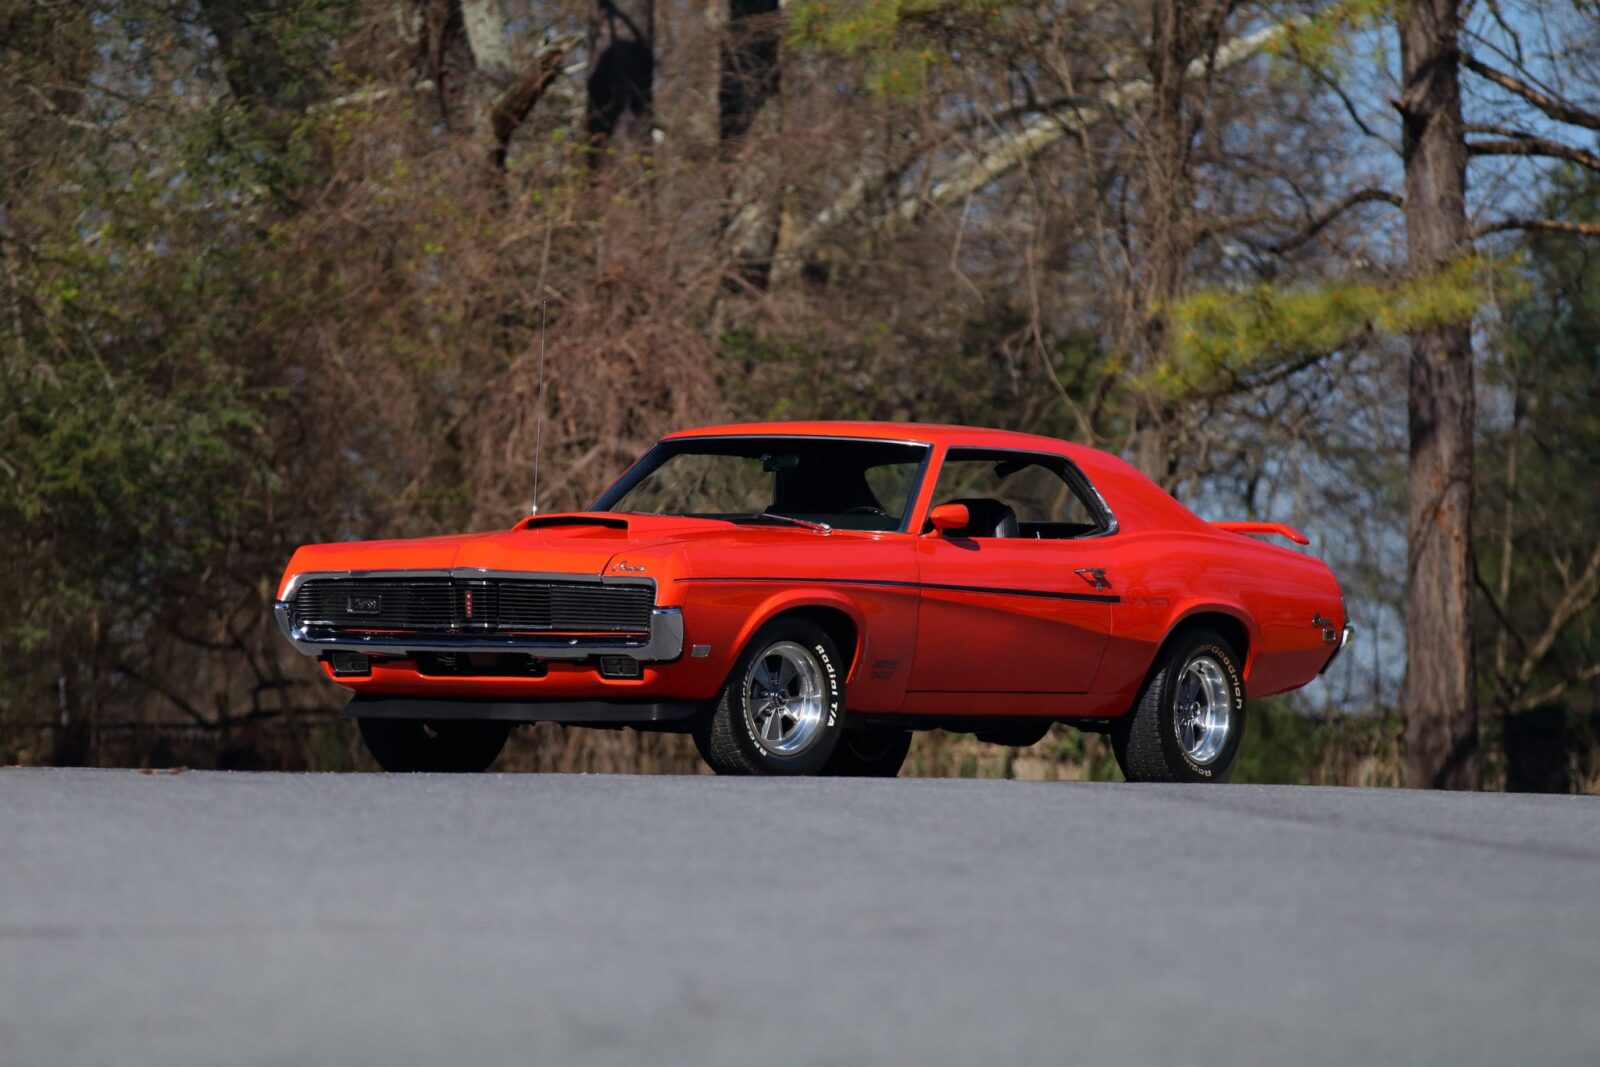 Mercury Cougar Boss 302 1600x1067 - 1969 Mercury Cougar Boss 302